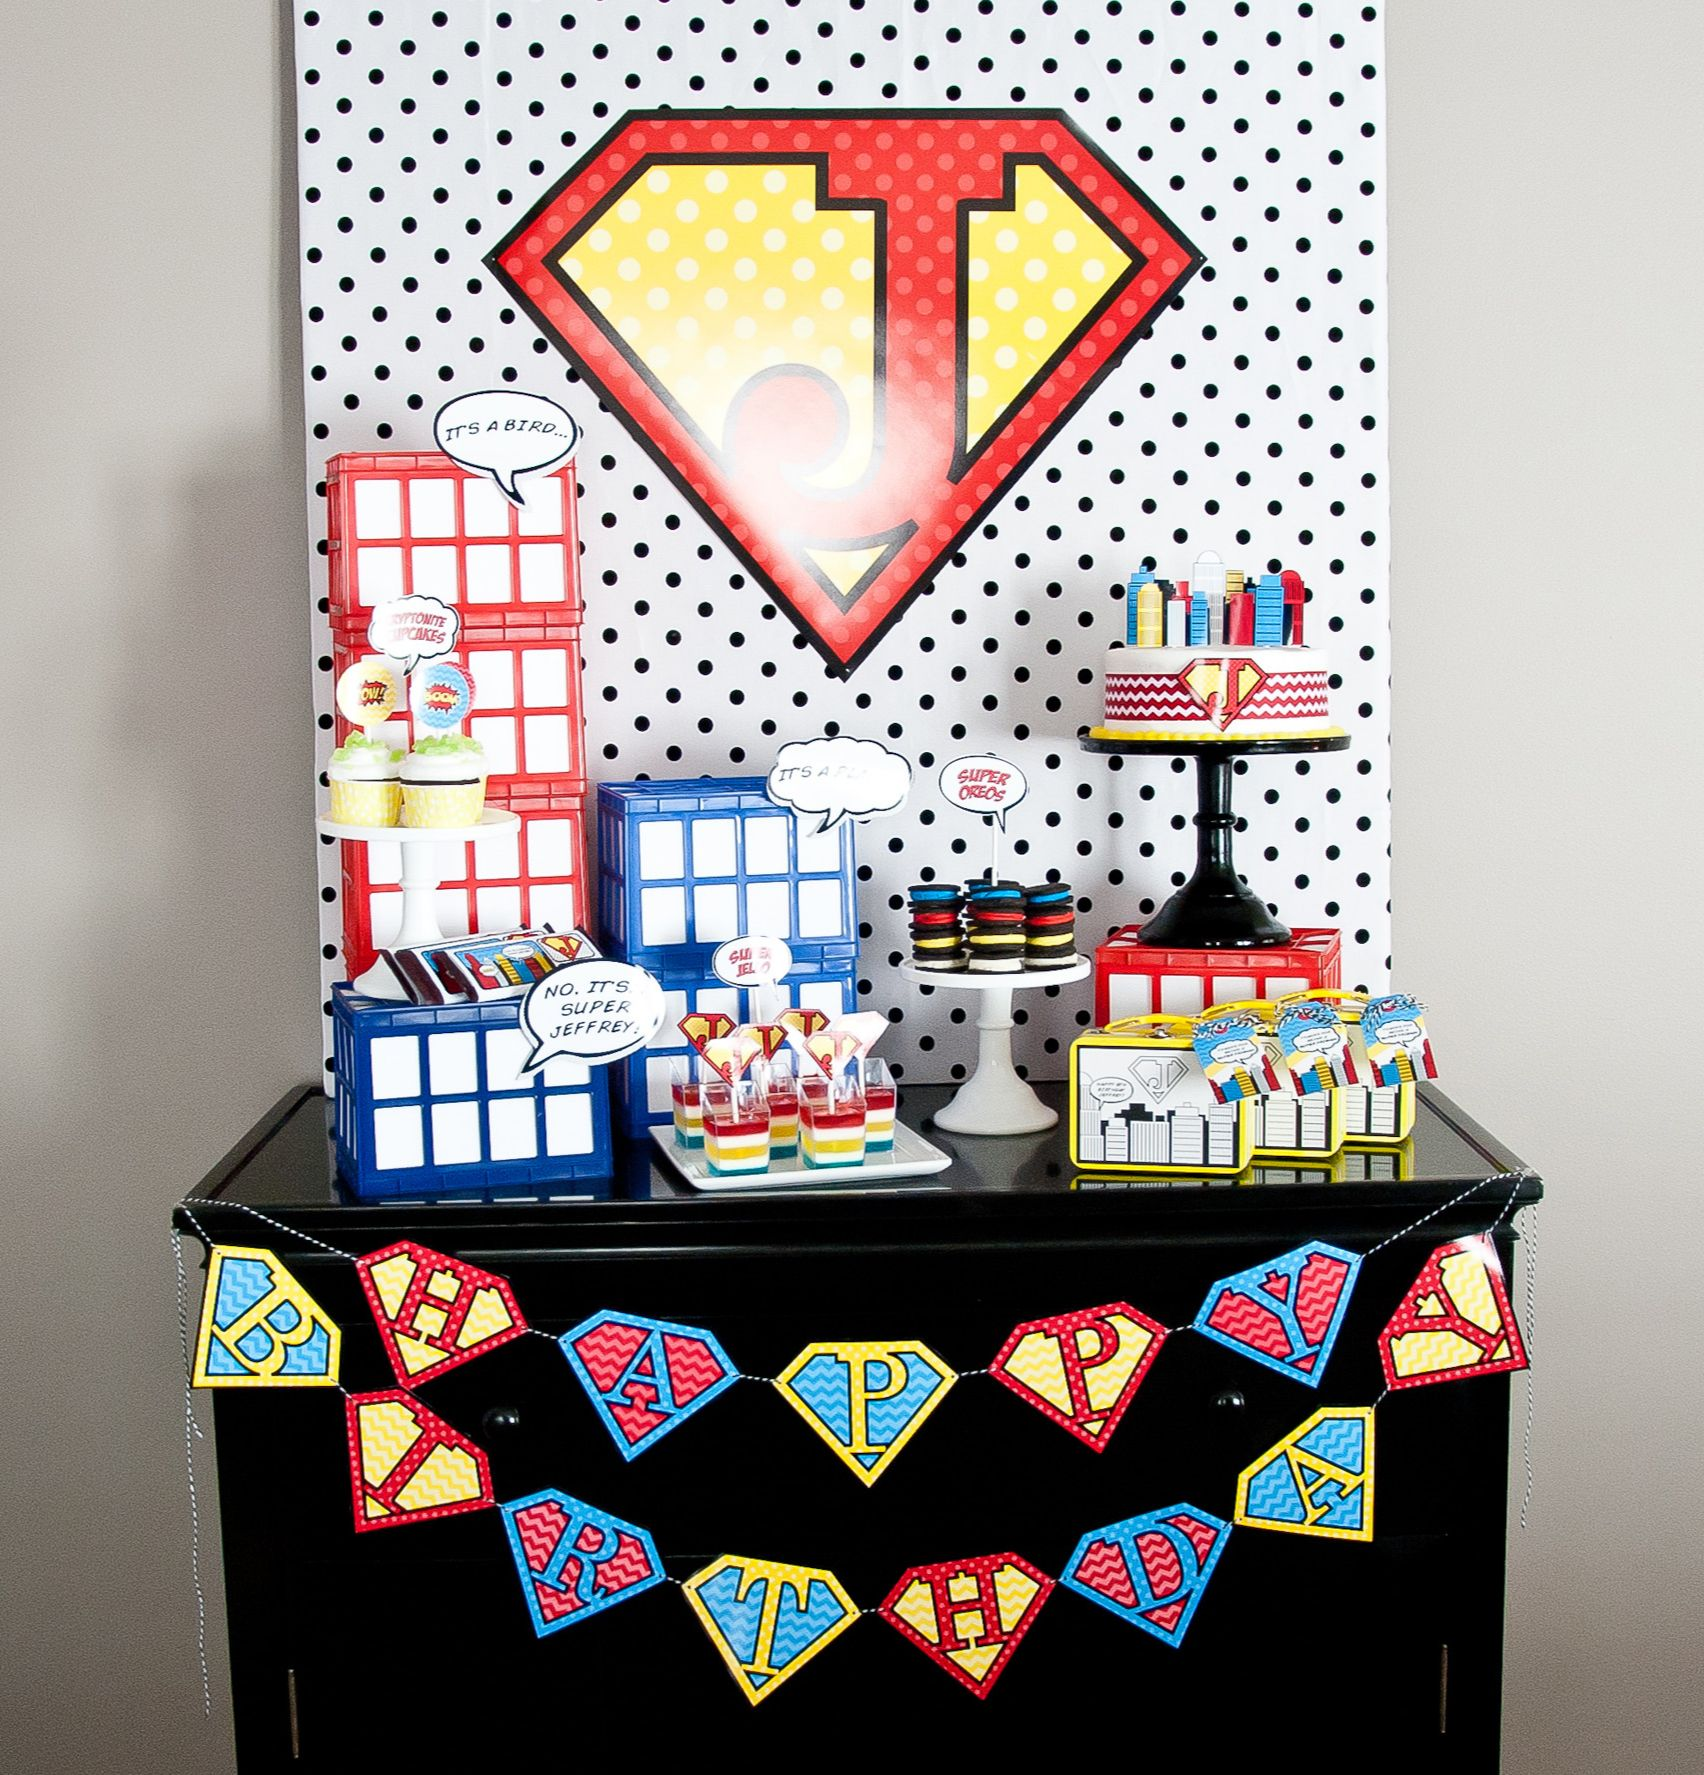 Comic Performer Design Ideas: Vintage Comic Book Style Super Hero Birthday Party {On A